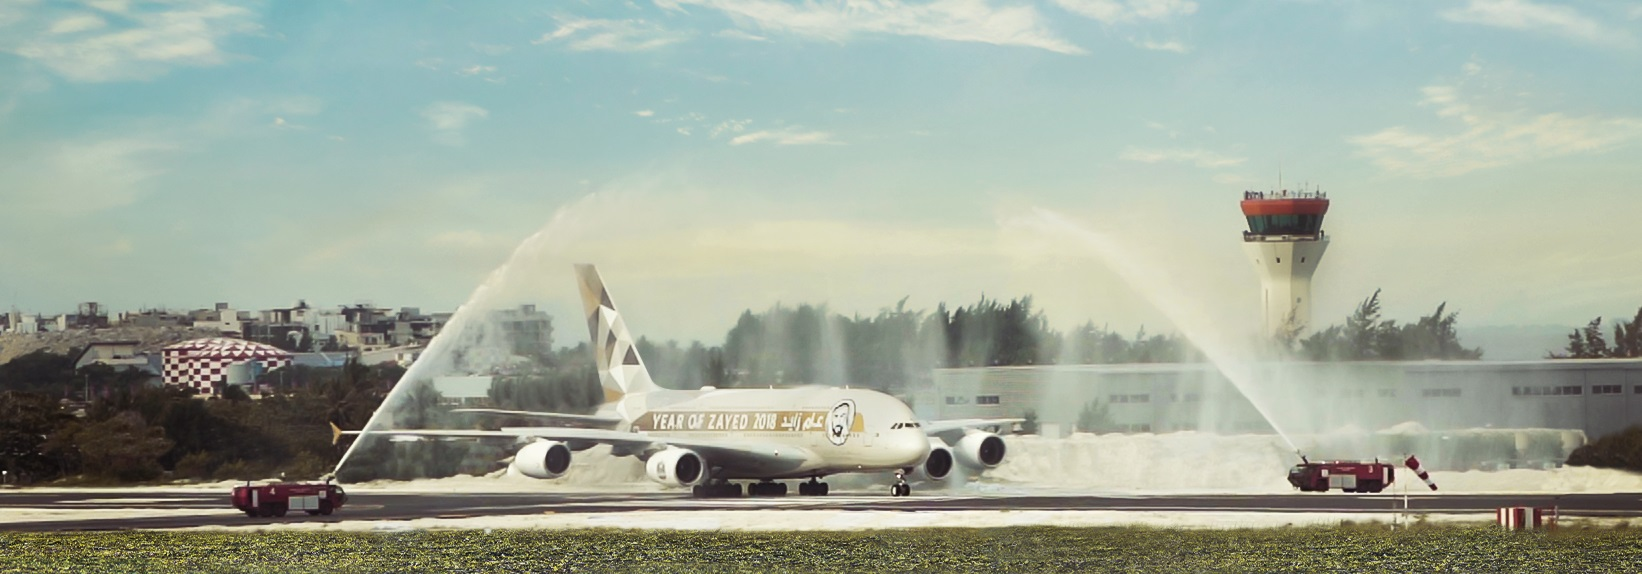 Etihad A380 at Male (cropped)